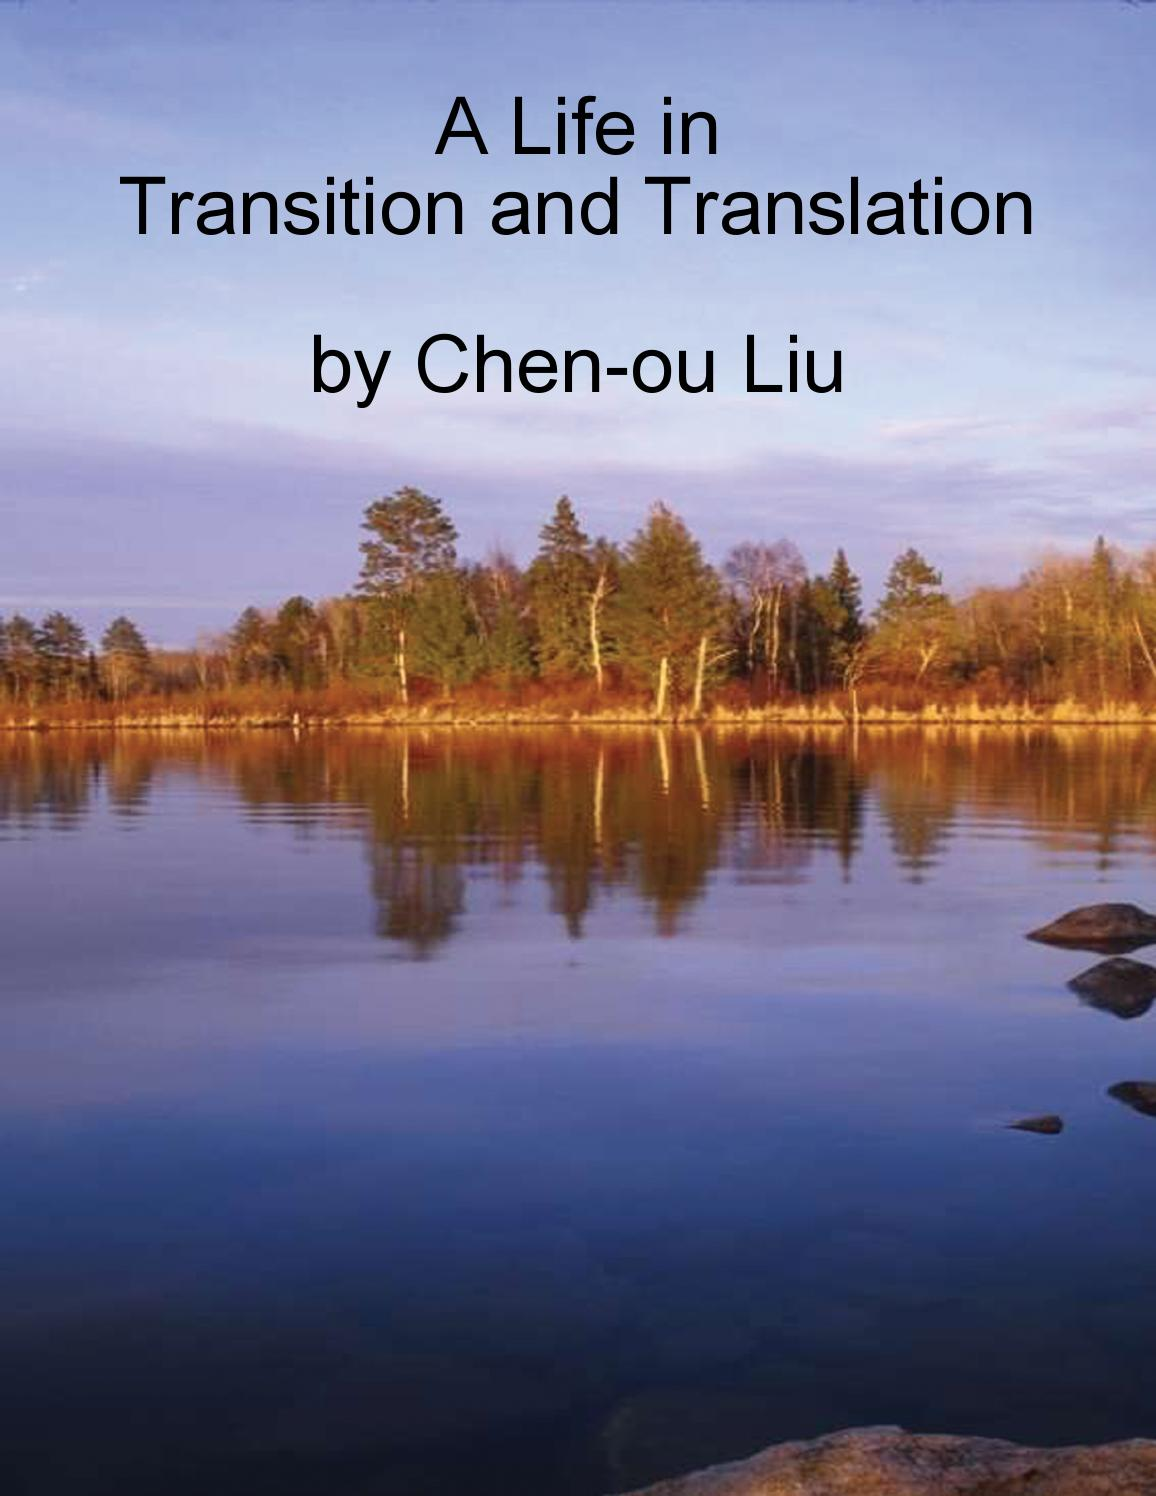 A life in transition and translation